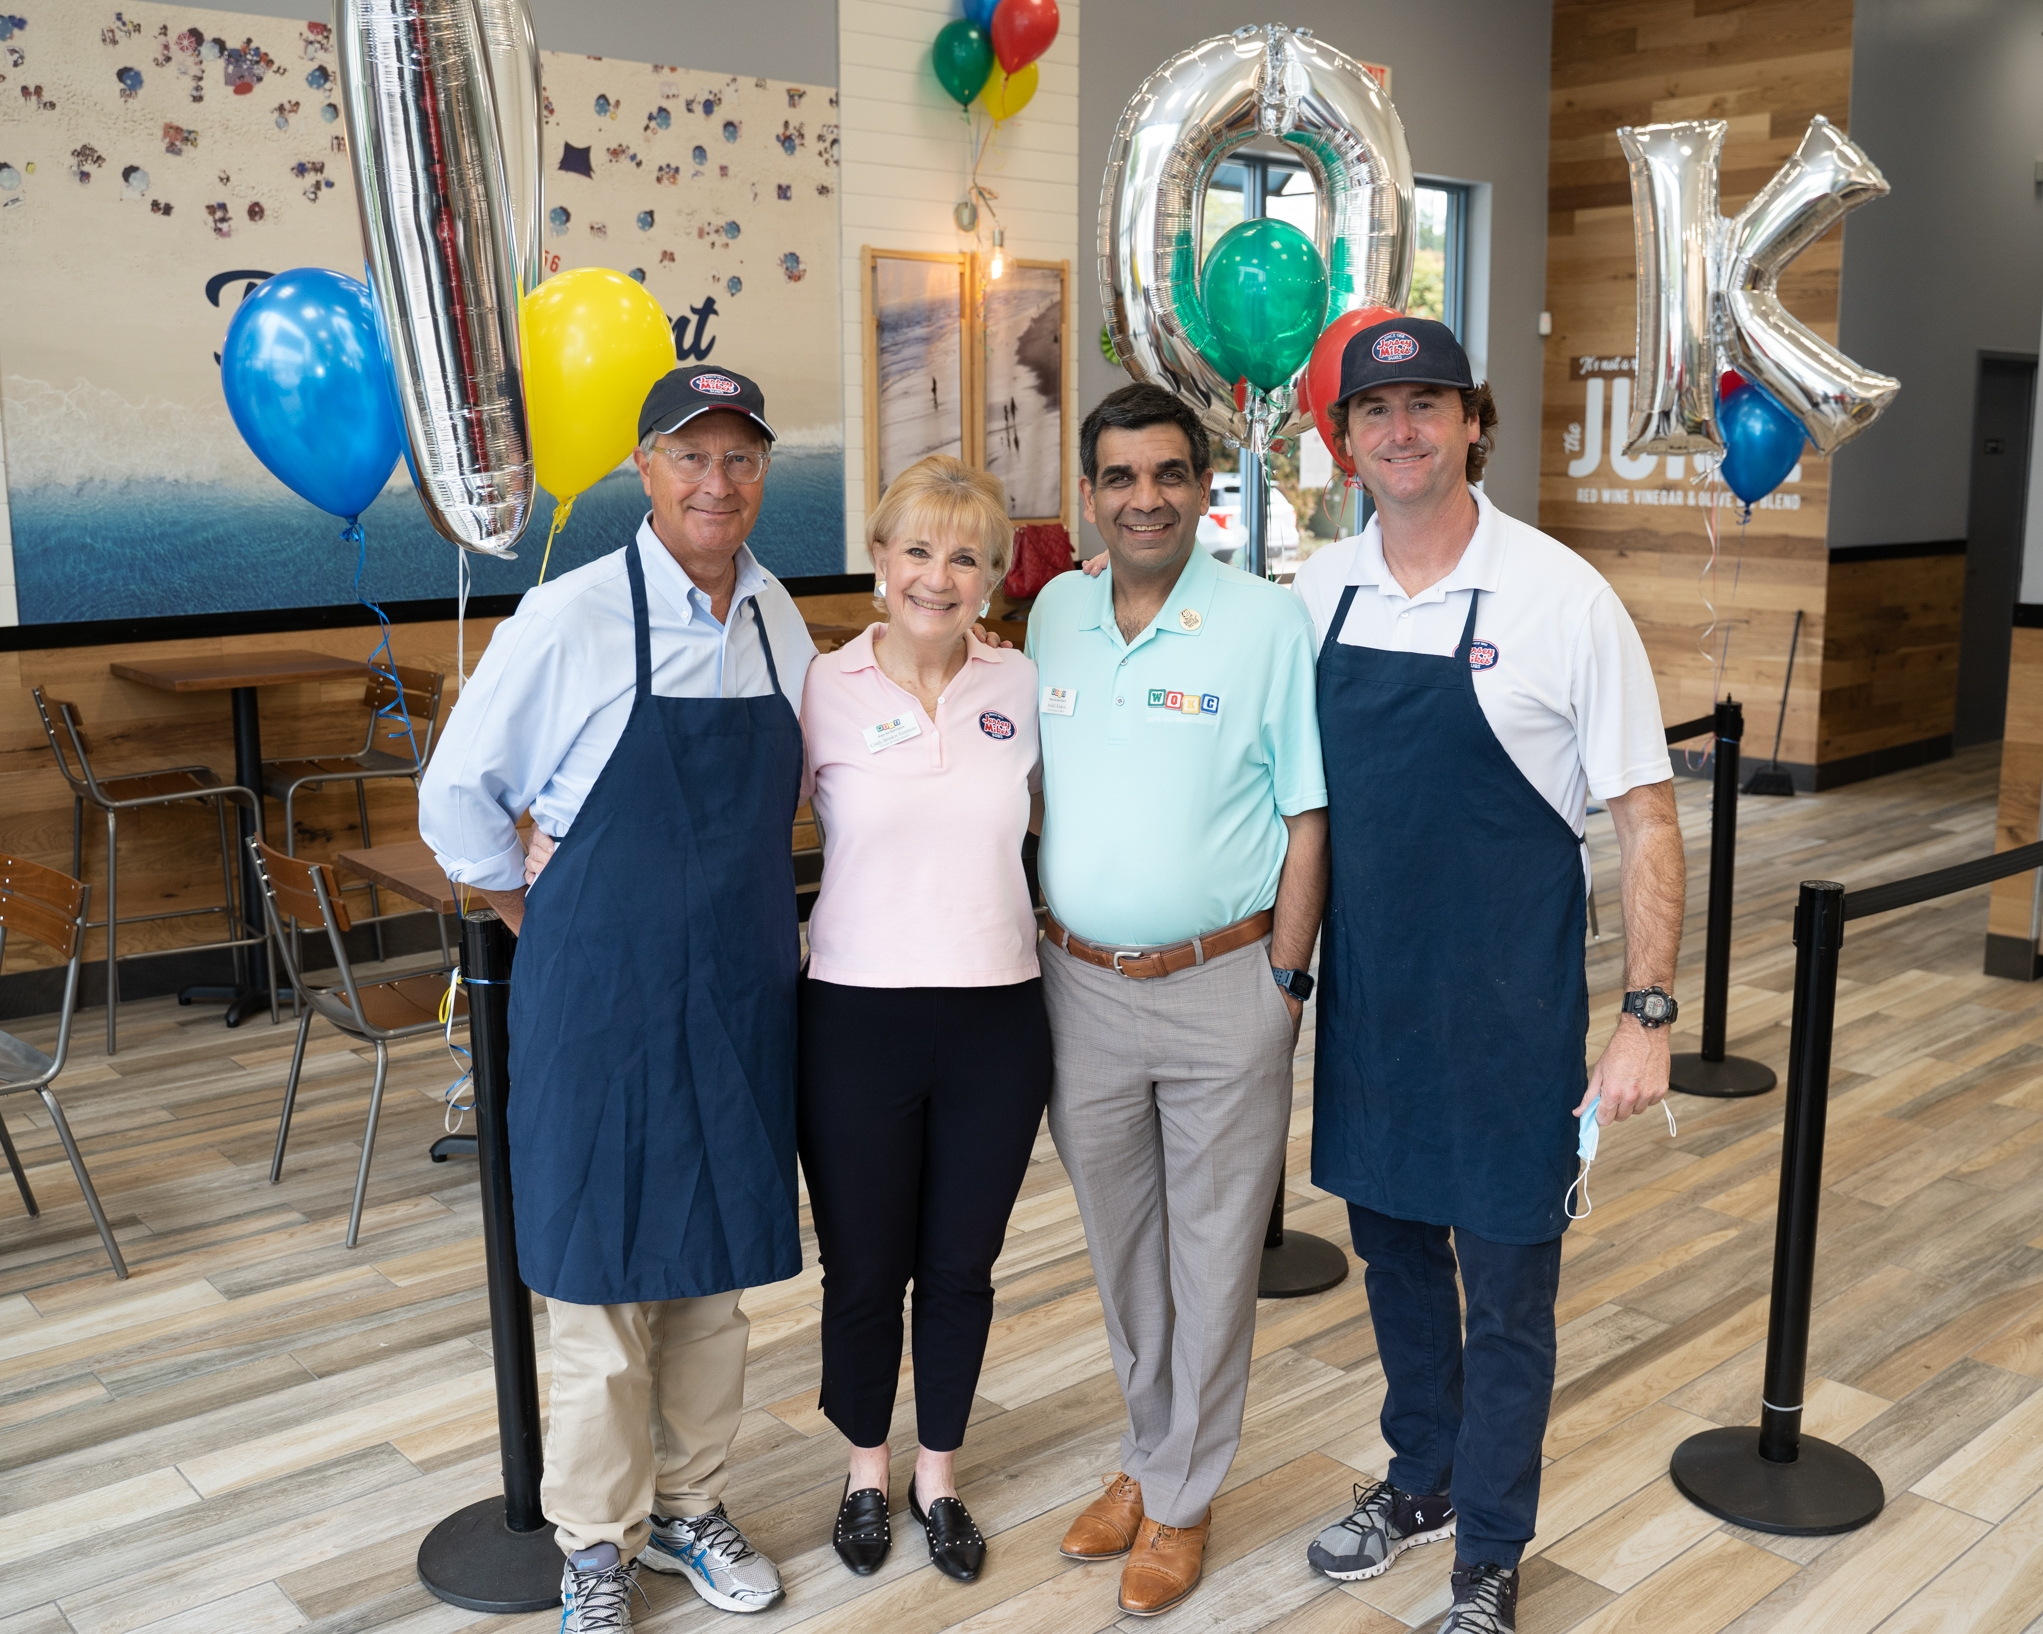 DFW AREA JERSEY MIKE'S RAISE $745,250 FOR WIPE OUT KIDS' CANCER